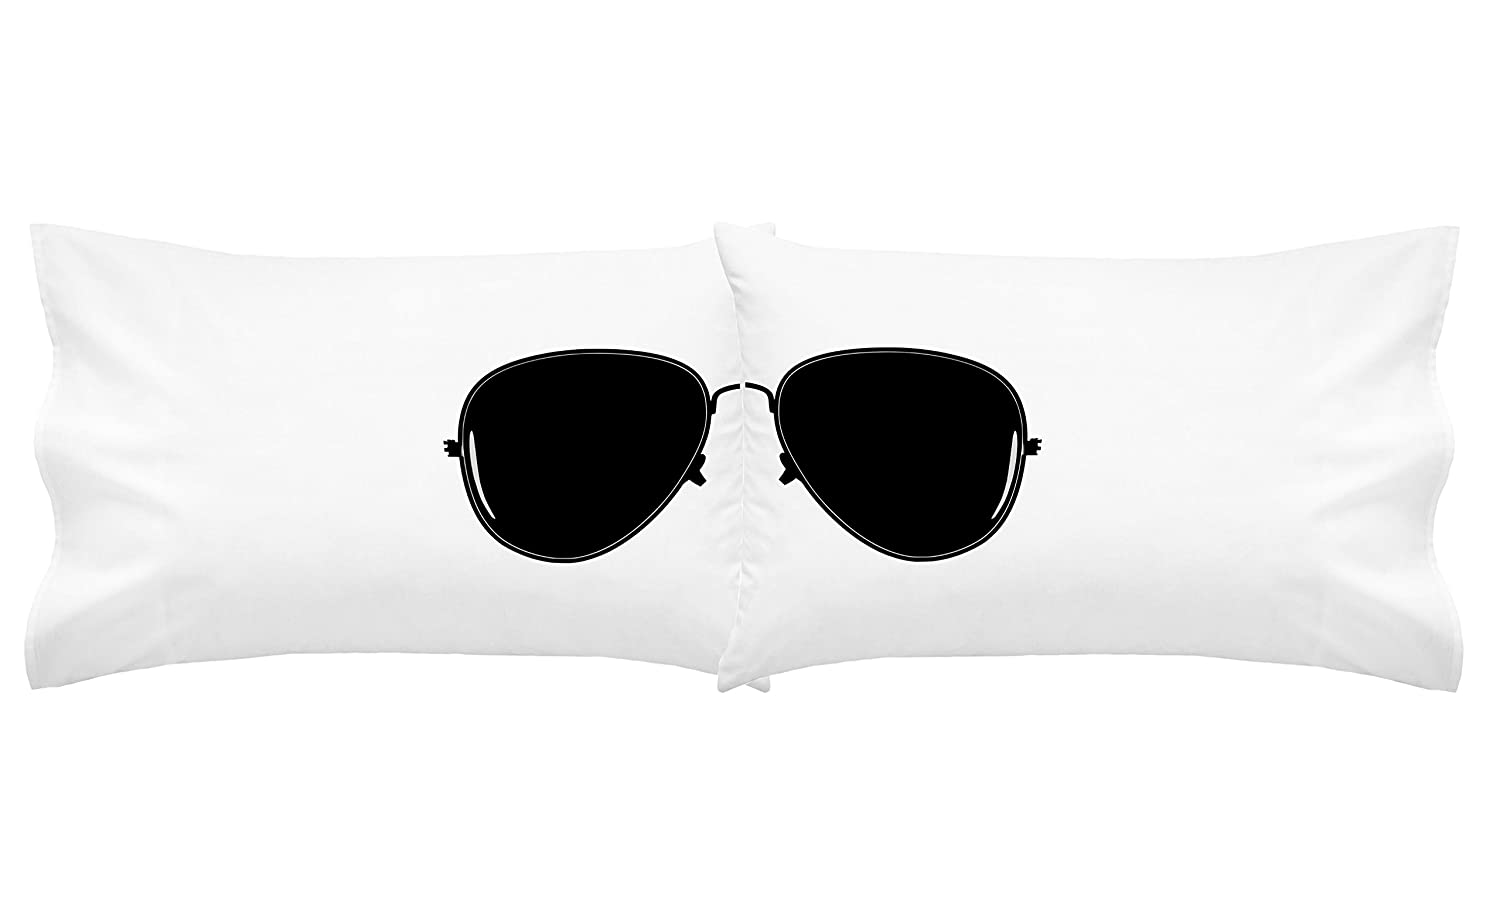 58d58f9952d5 Oh, Susannah Aviator Sunglasses Pillowcases (White and Black) Pilot Bedding  College Dorm Room Pillow Cases Mirrored Aviator Appearance (2 20x30 ...